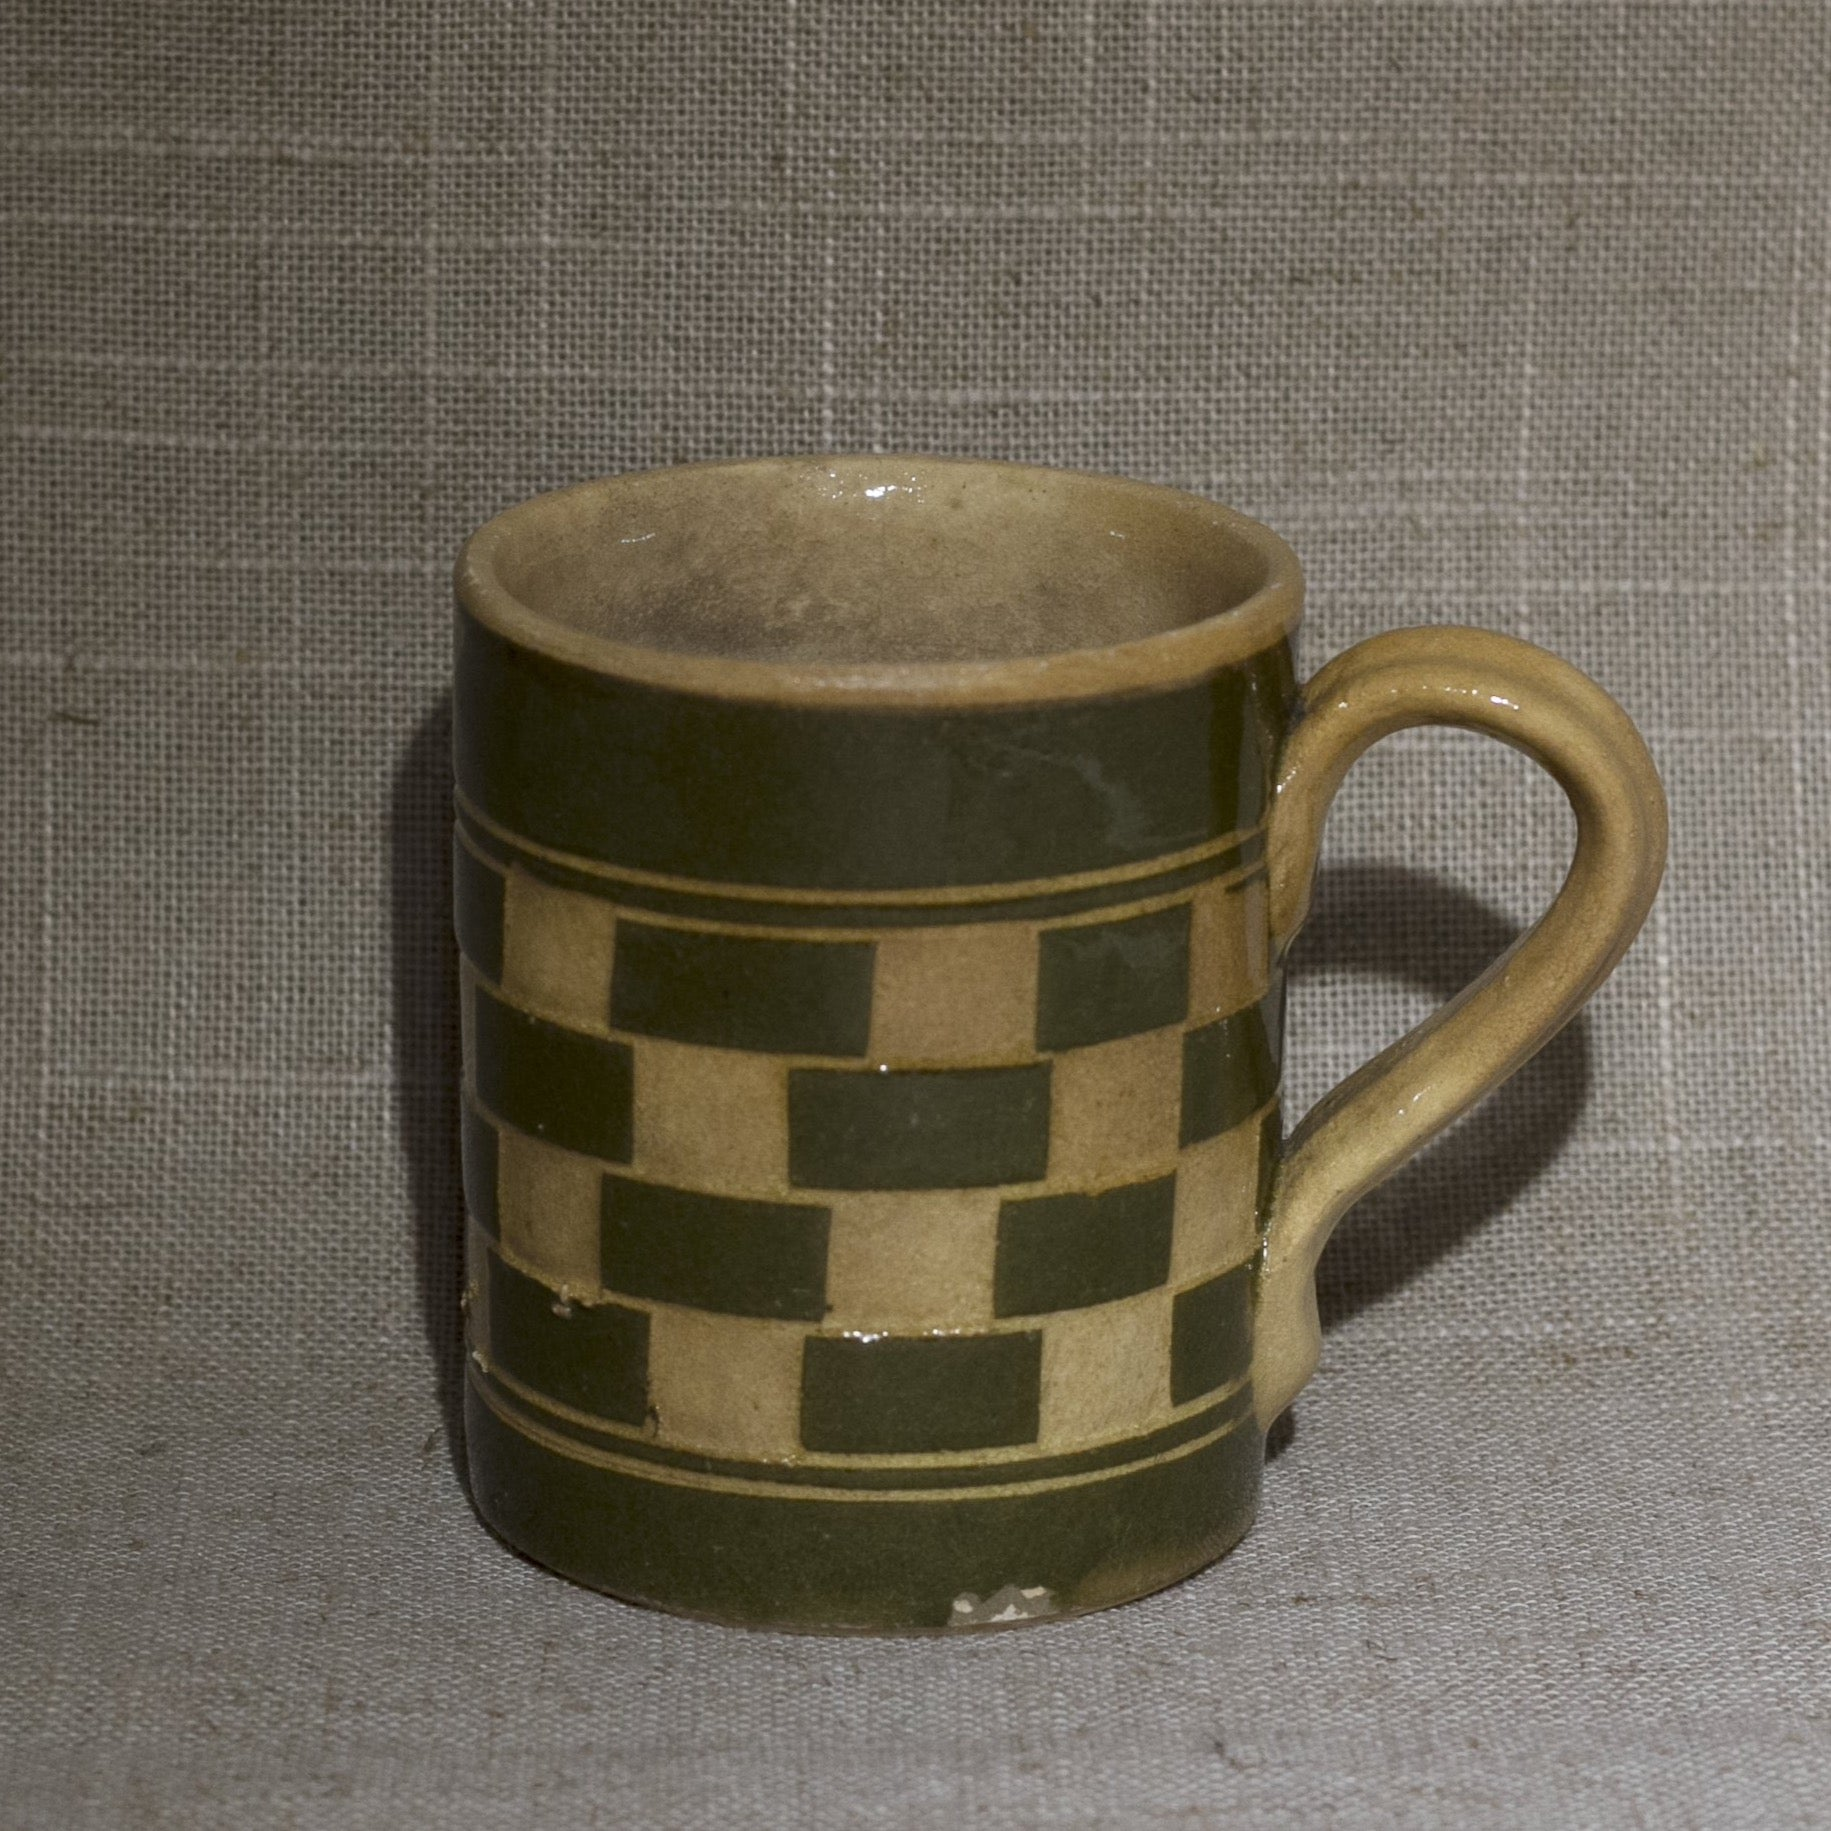 Antique English MOCHA WARE Mug with Tan and Olive Green Checkerboard Circa Early 19th Century